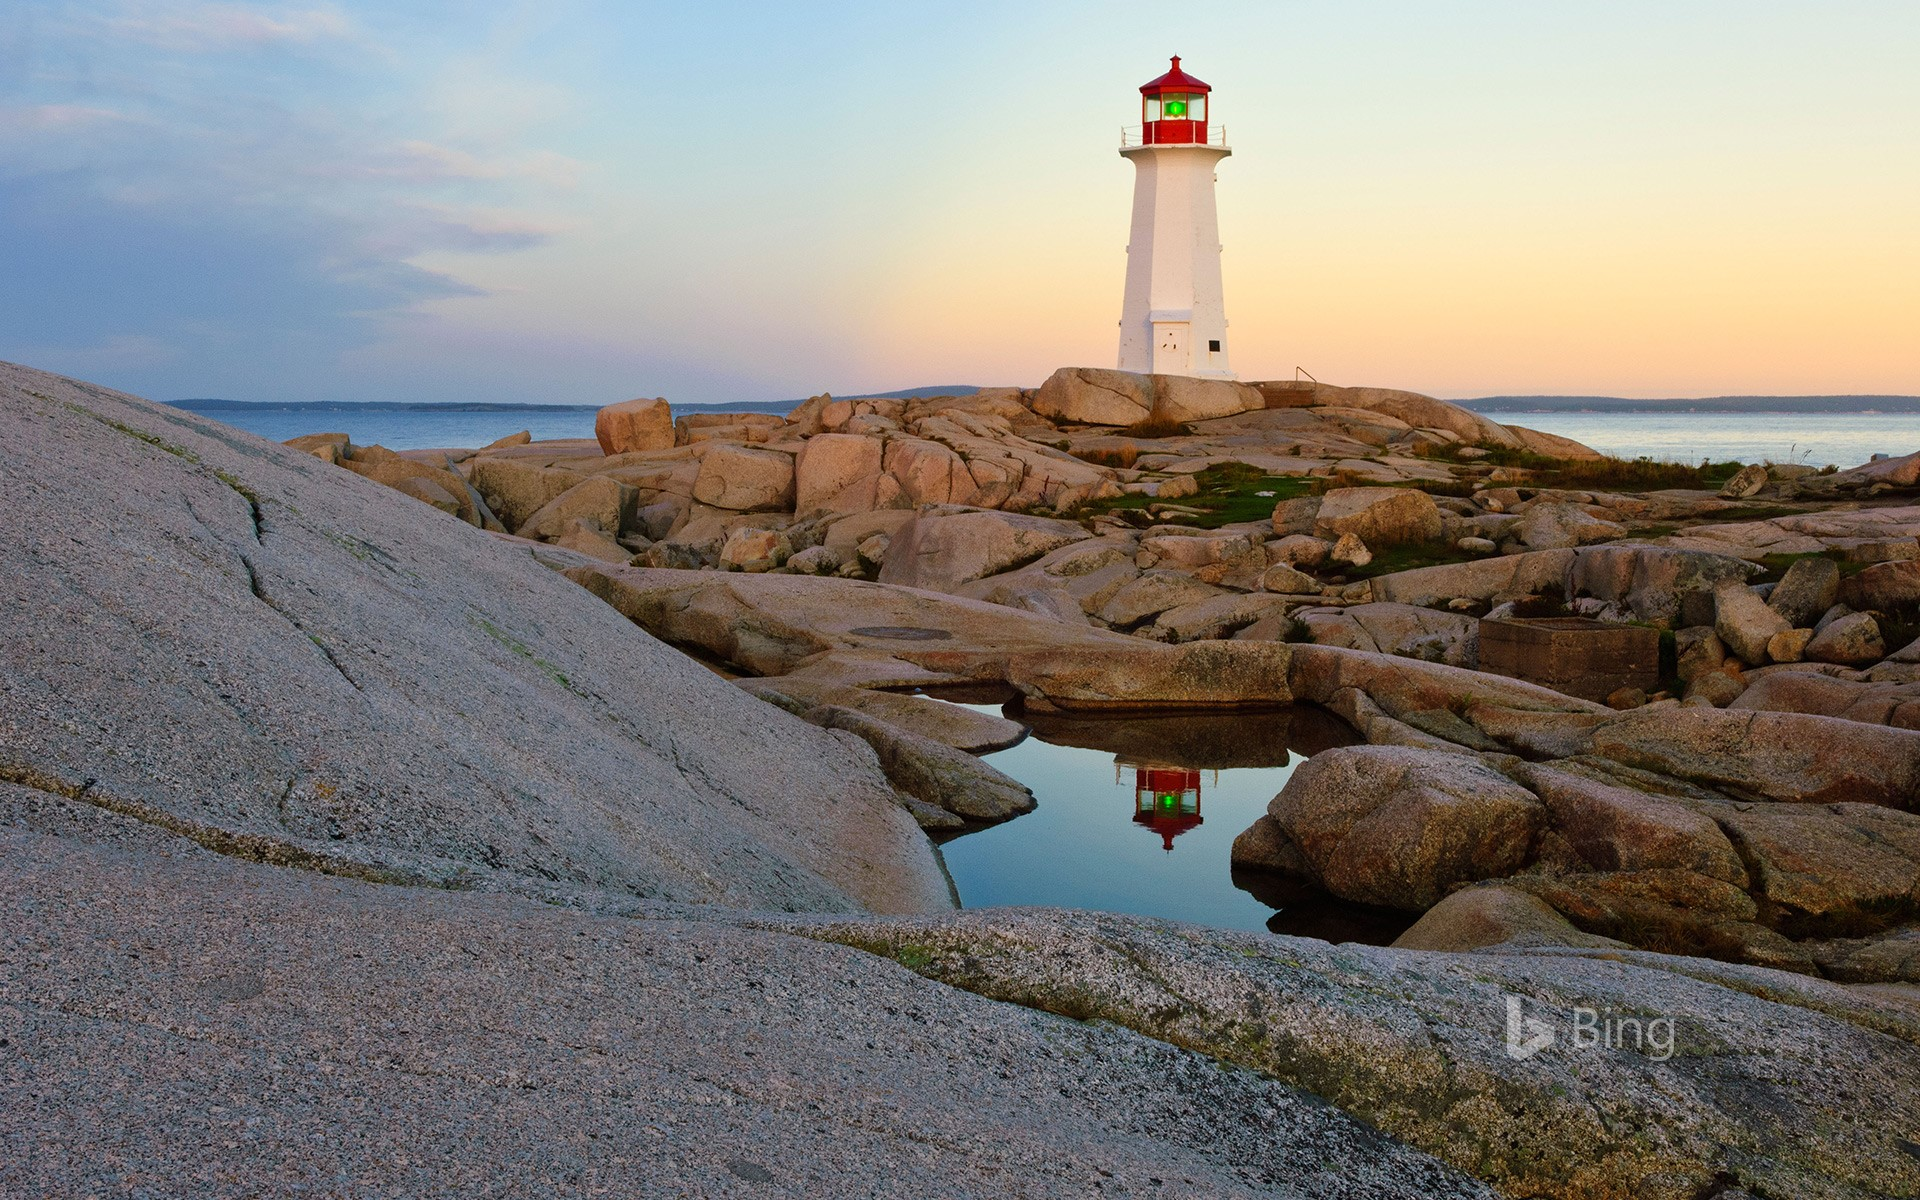 Lighthouse reflected in a pool of water at Peggy's Cove, Nova Scotia, Canada